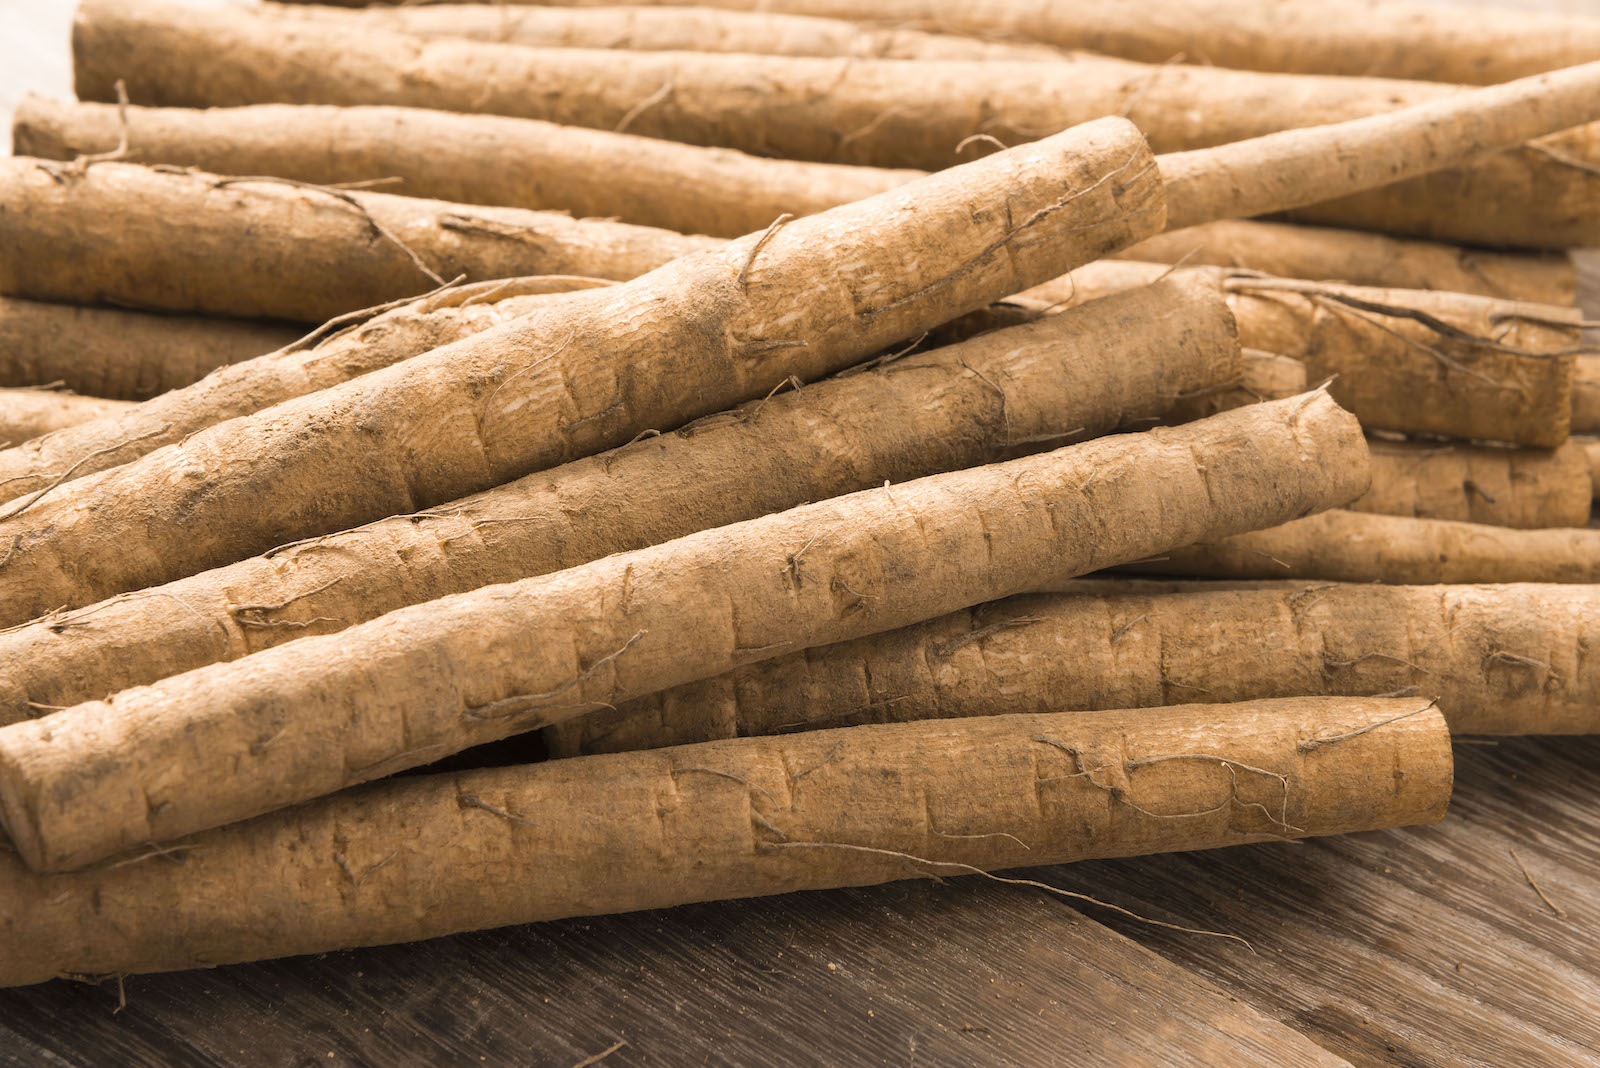 What's A Good Burdock Root Substitute?